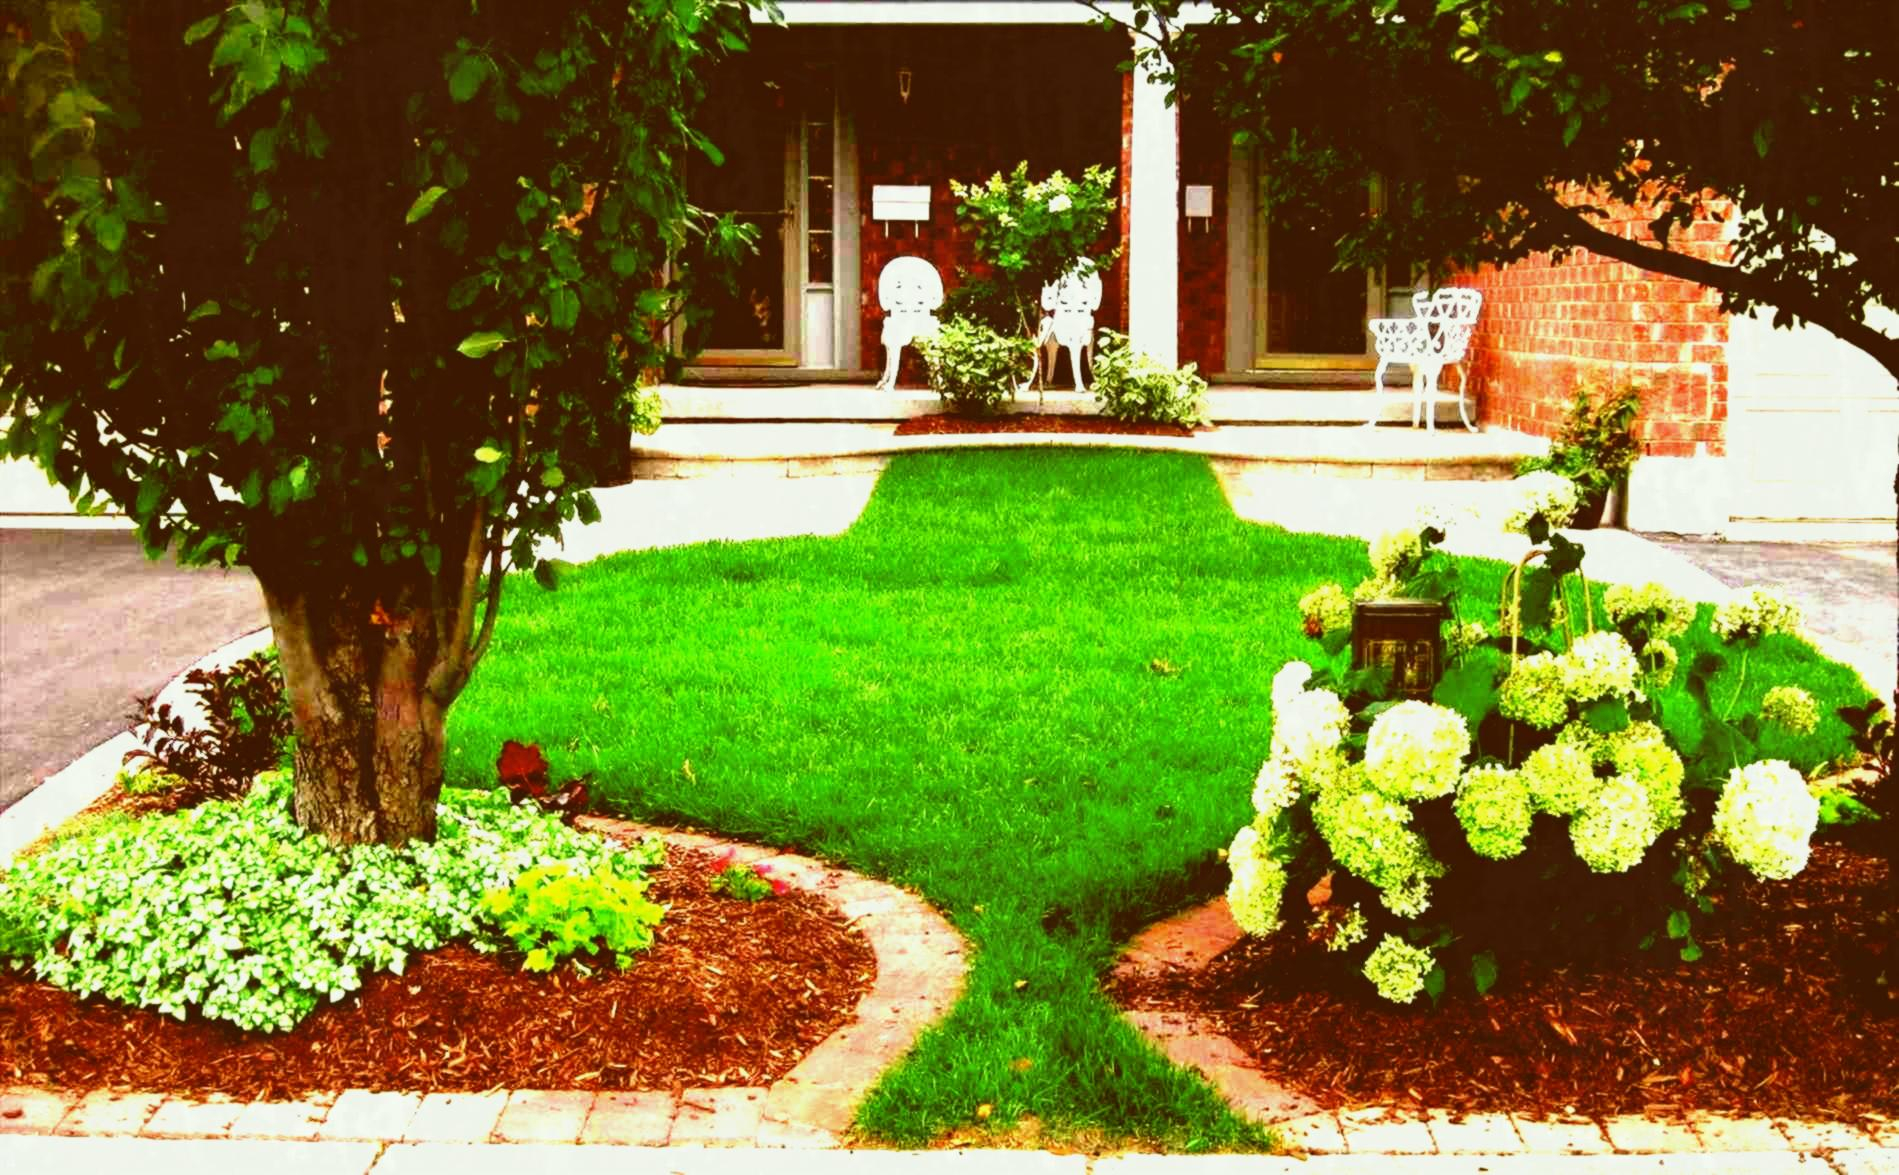 Amazing Garden Ideas : Vinyl Edging Gardens Houston Landscaping Gallery for Awesome Richard's Total Backyard Solutions